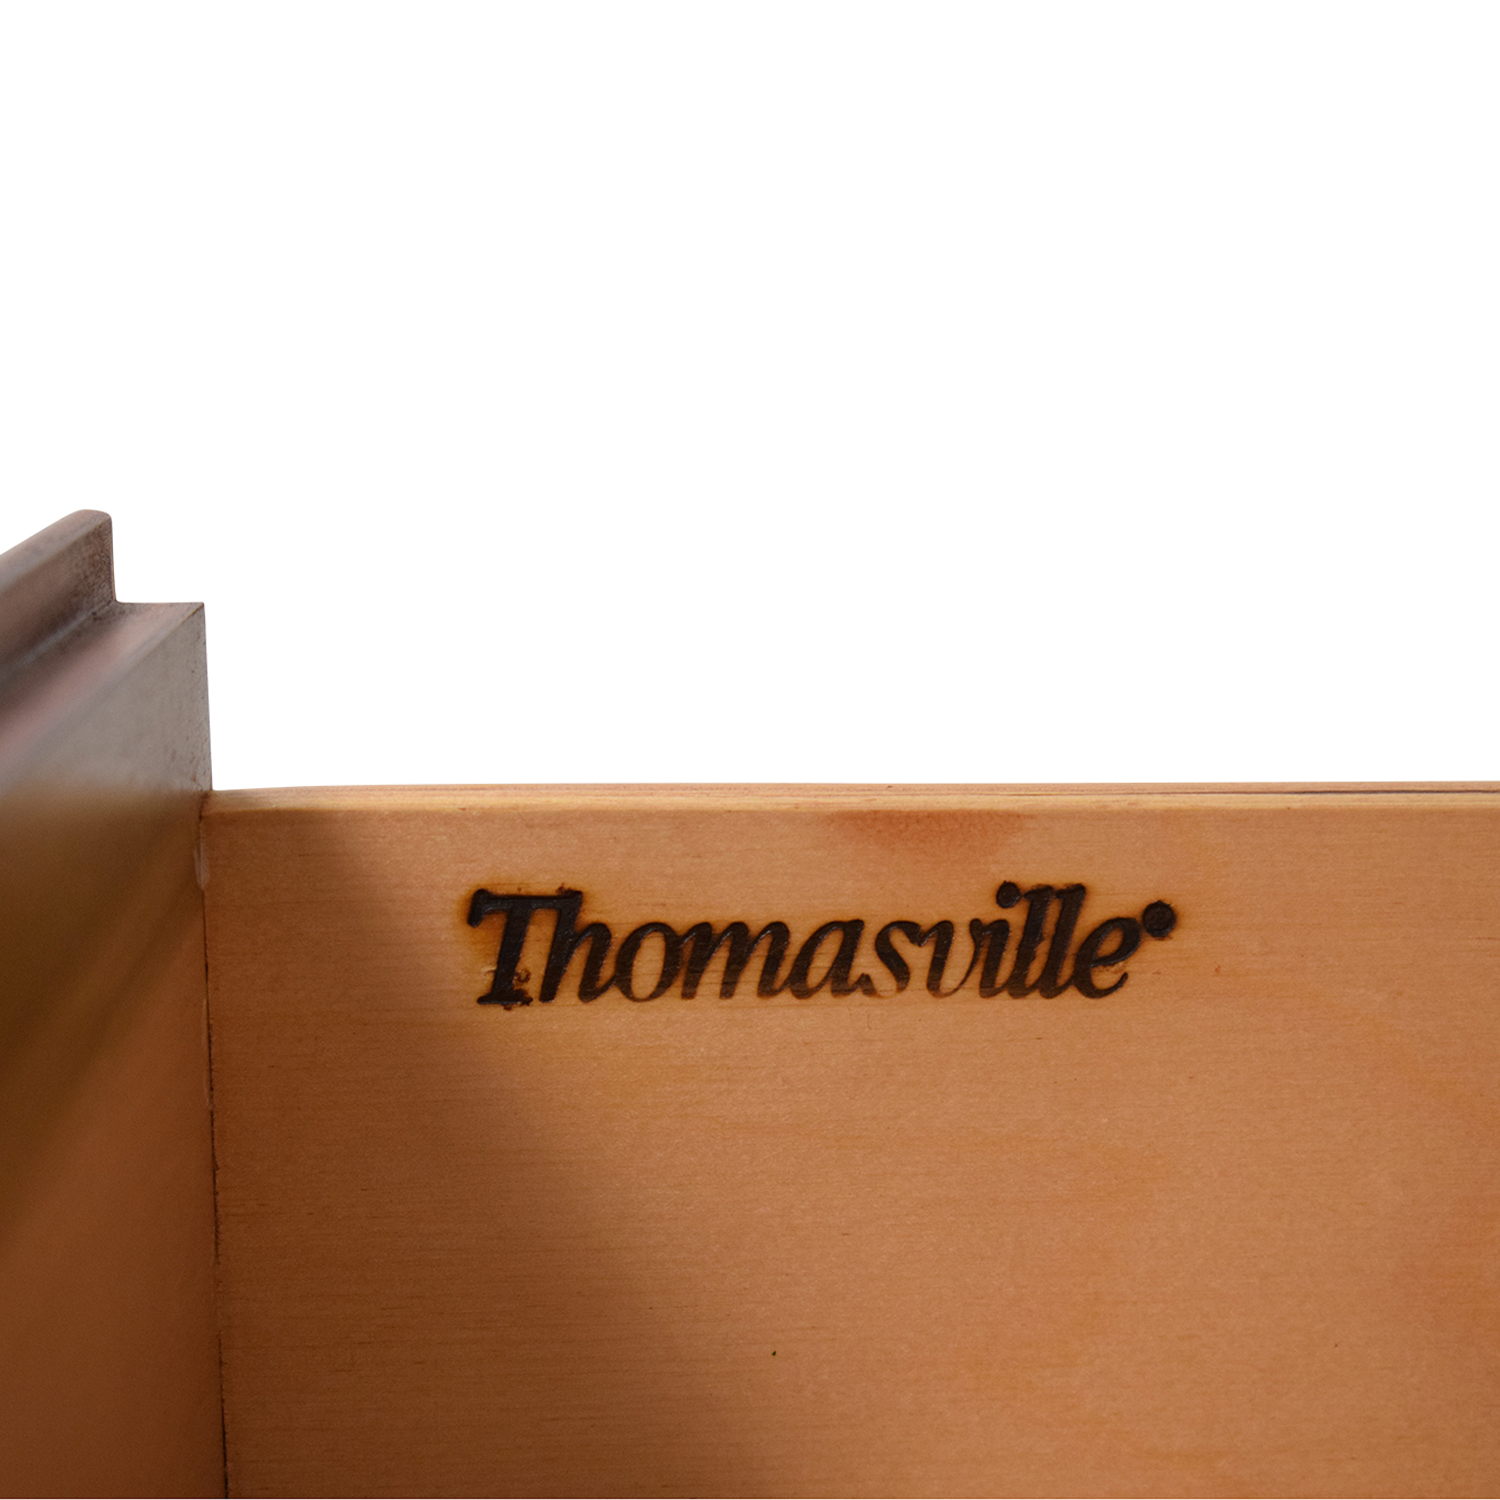 Thomasville Thomasville Buffet Server price